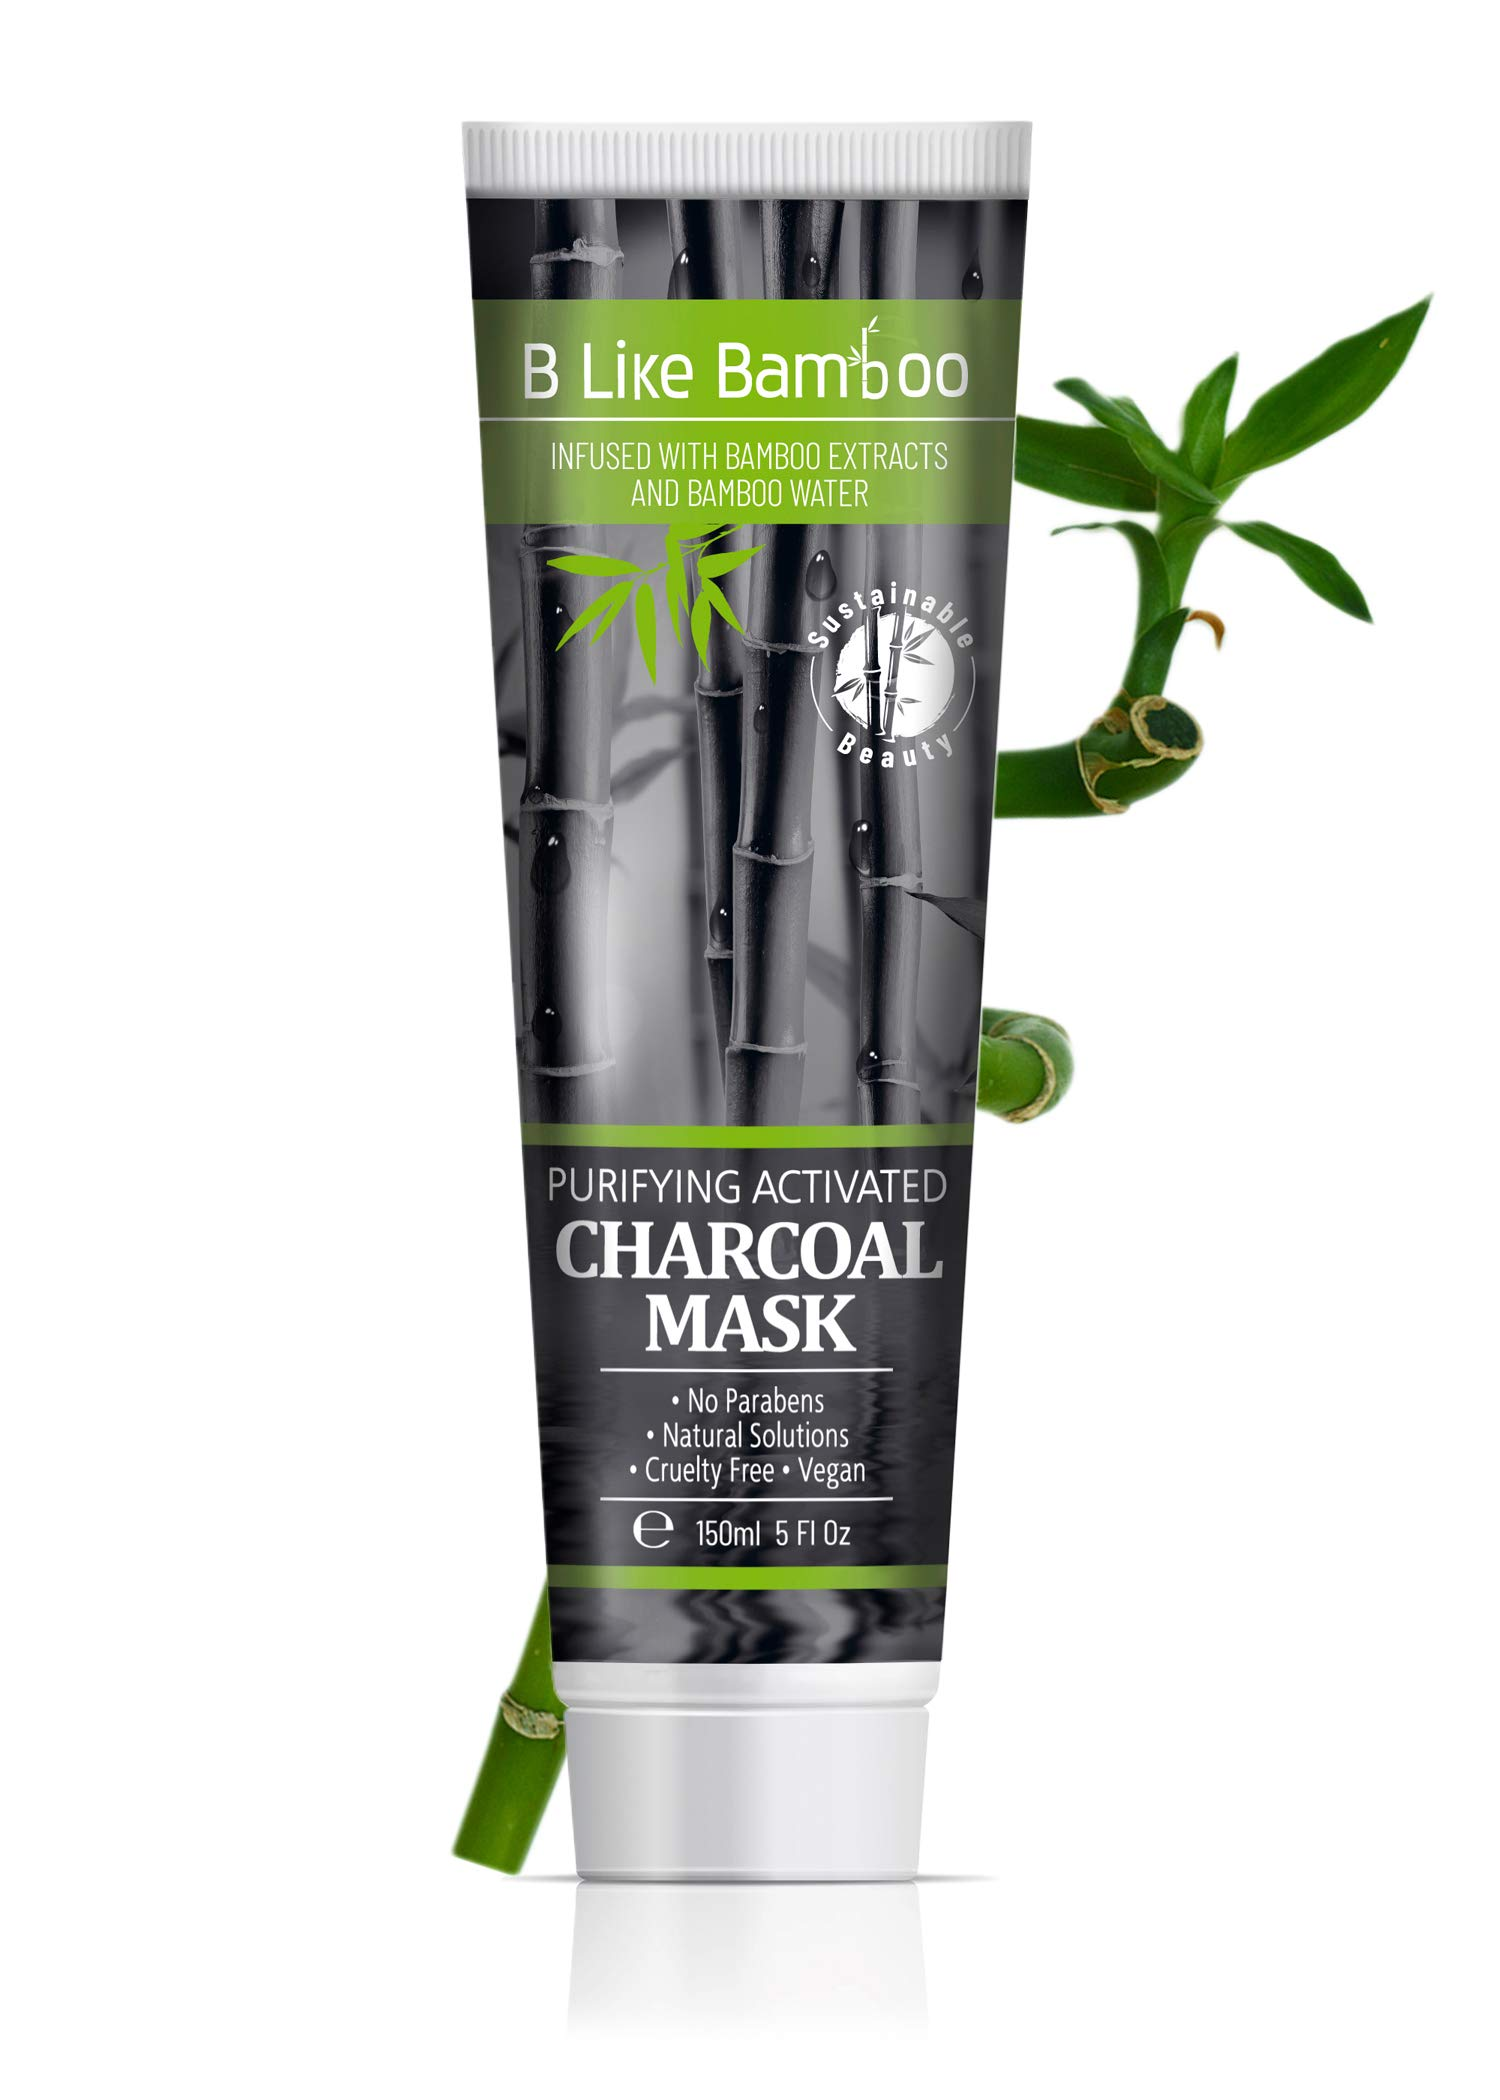 B Like Bamboo Purifying Activated Charcoal Face Mask with Organic Aloe Vera and Kaolin Clay | Pore Minimizer | Deep Cleansing | Acne | Blackhead | Oily Skin | Natural Skincare for Women & Men (5 oz)